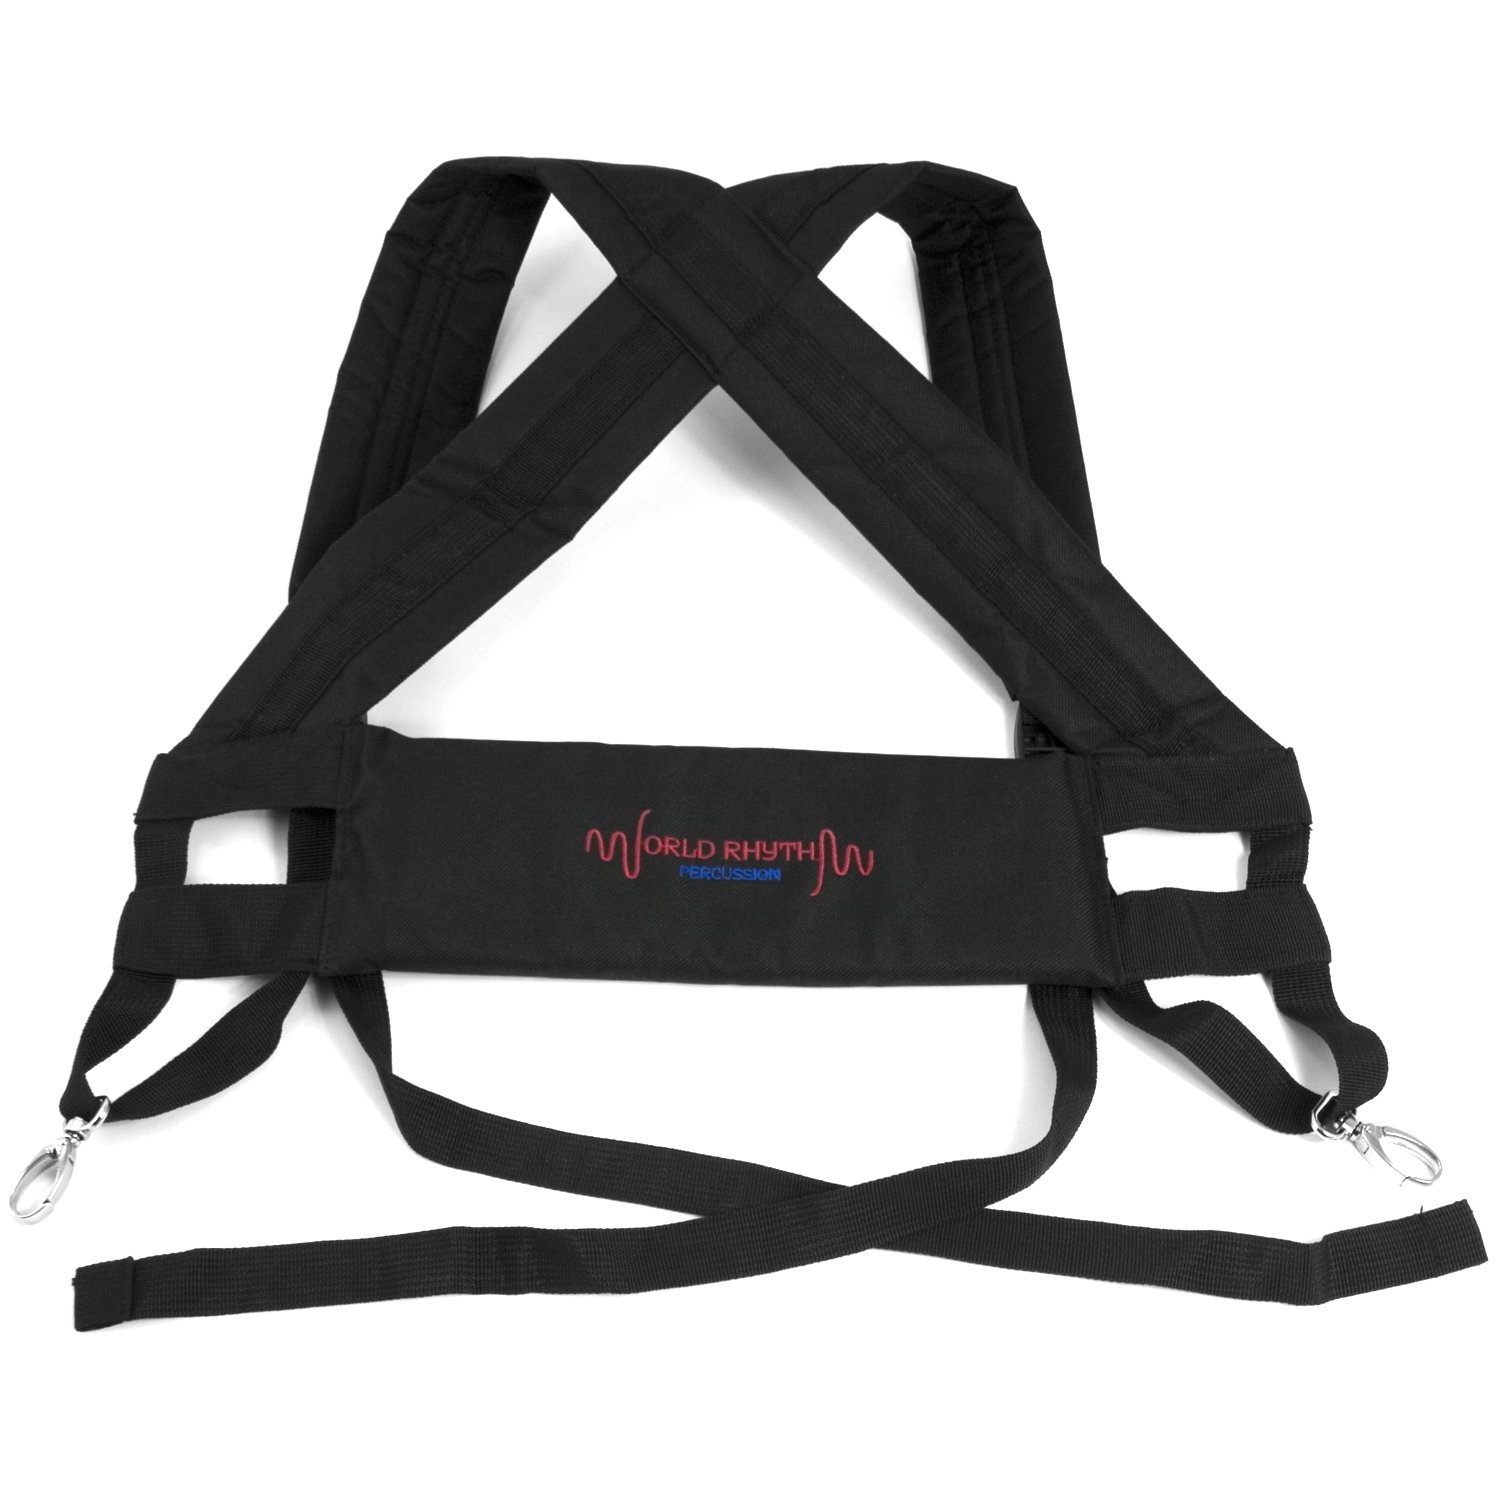 World Rhythm Djembe Drum Harness - Padded Carry Straps Black - Suitable for All Size Djembes World Rhythm Percussion MDJ069